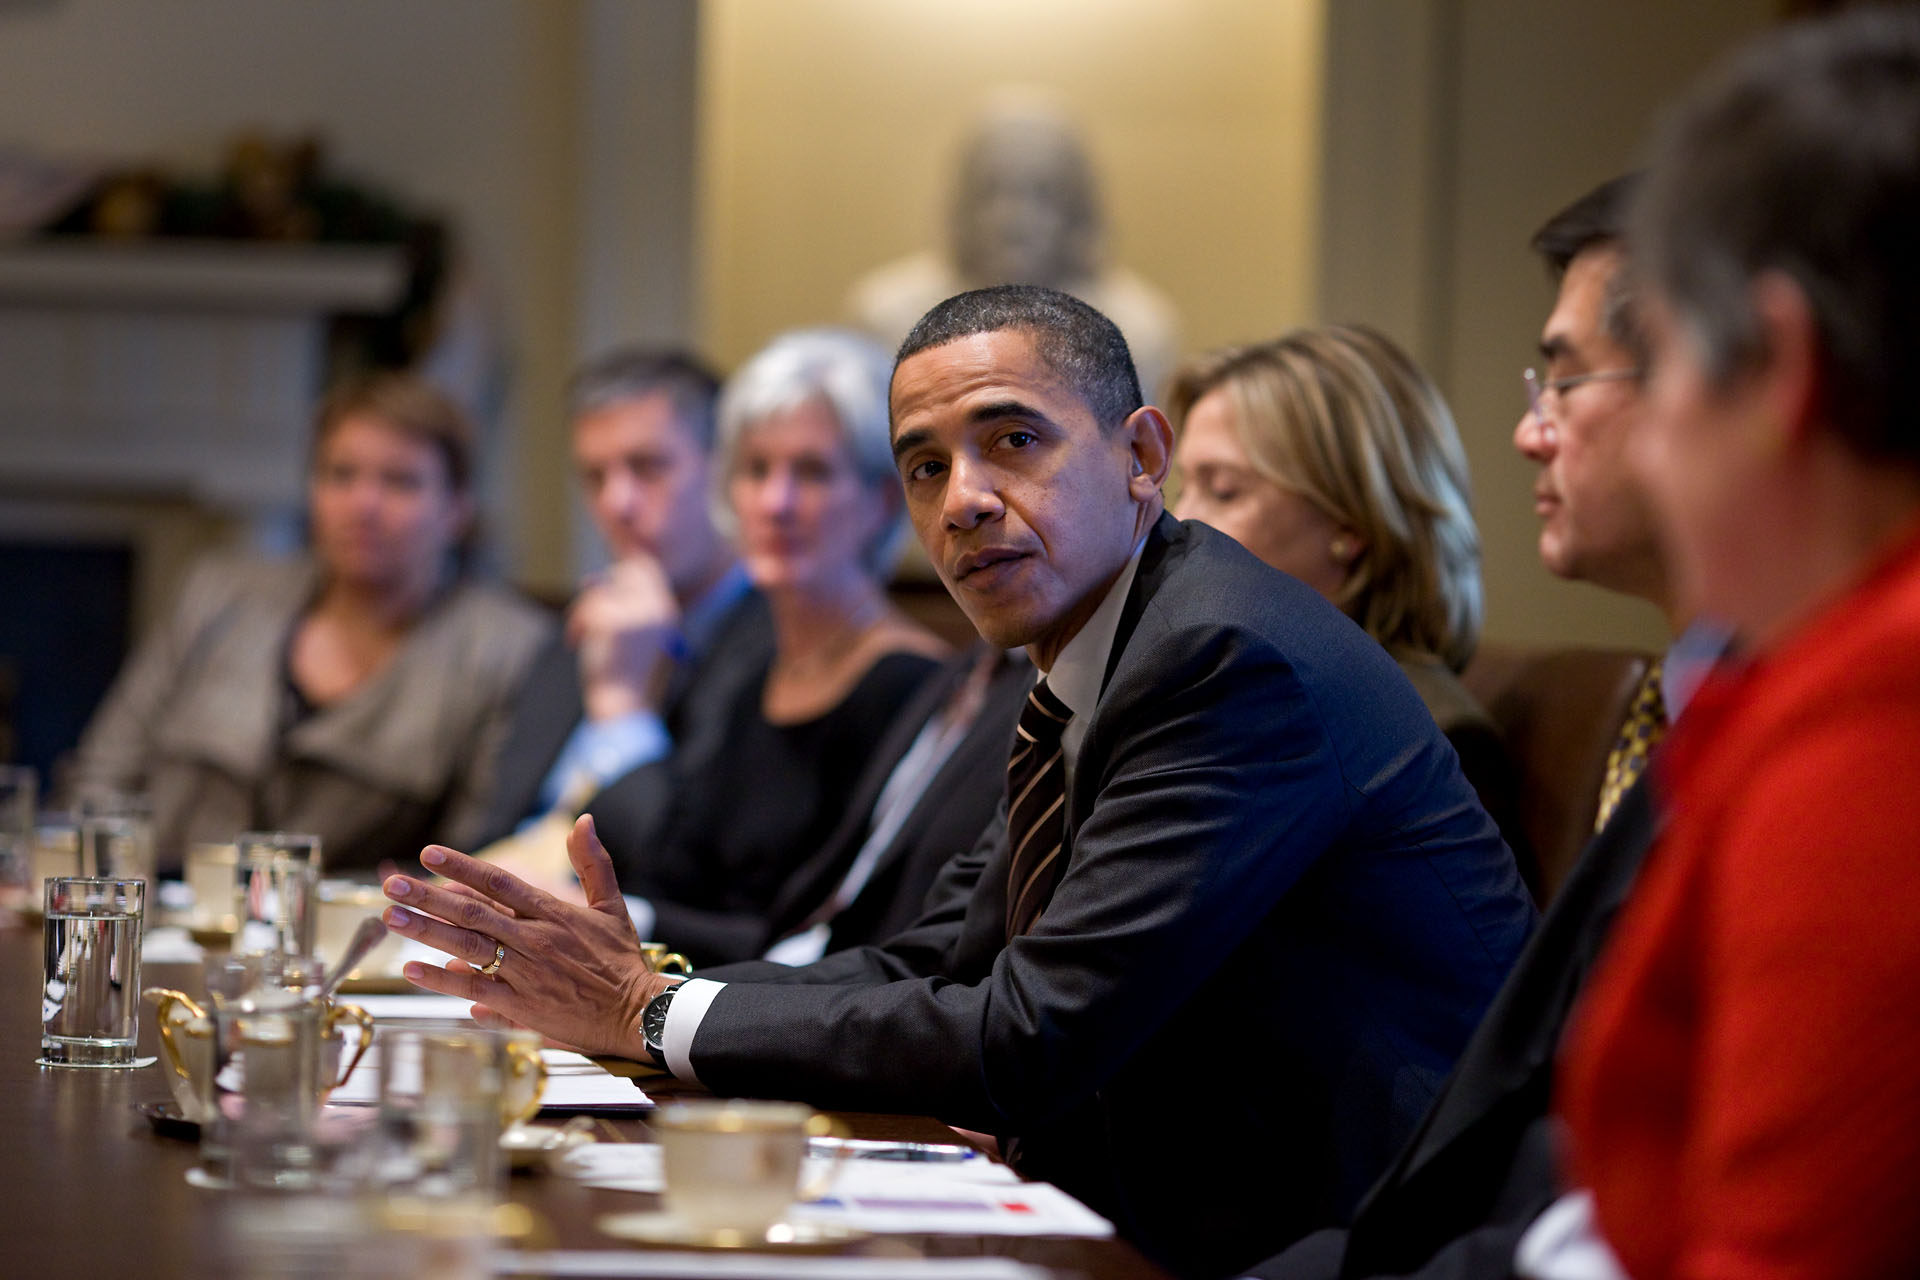 The President Convenes the Cabinet on December 8th, 2010